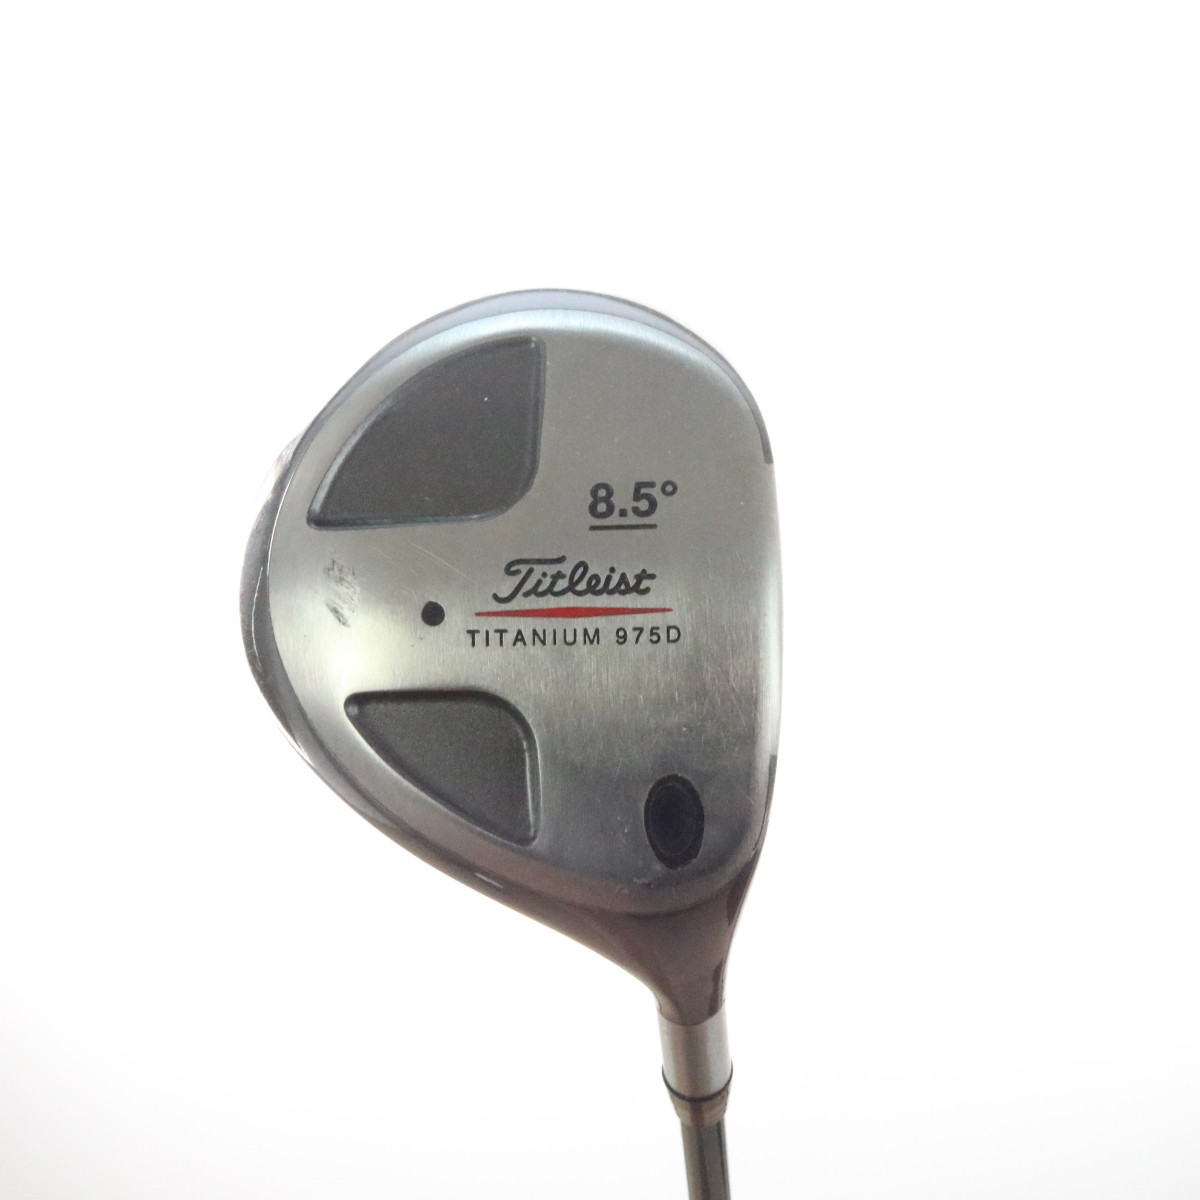 Titleist 975d driver | brand titleist model 975d club driver… | flickr.